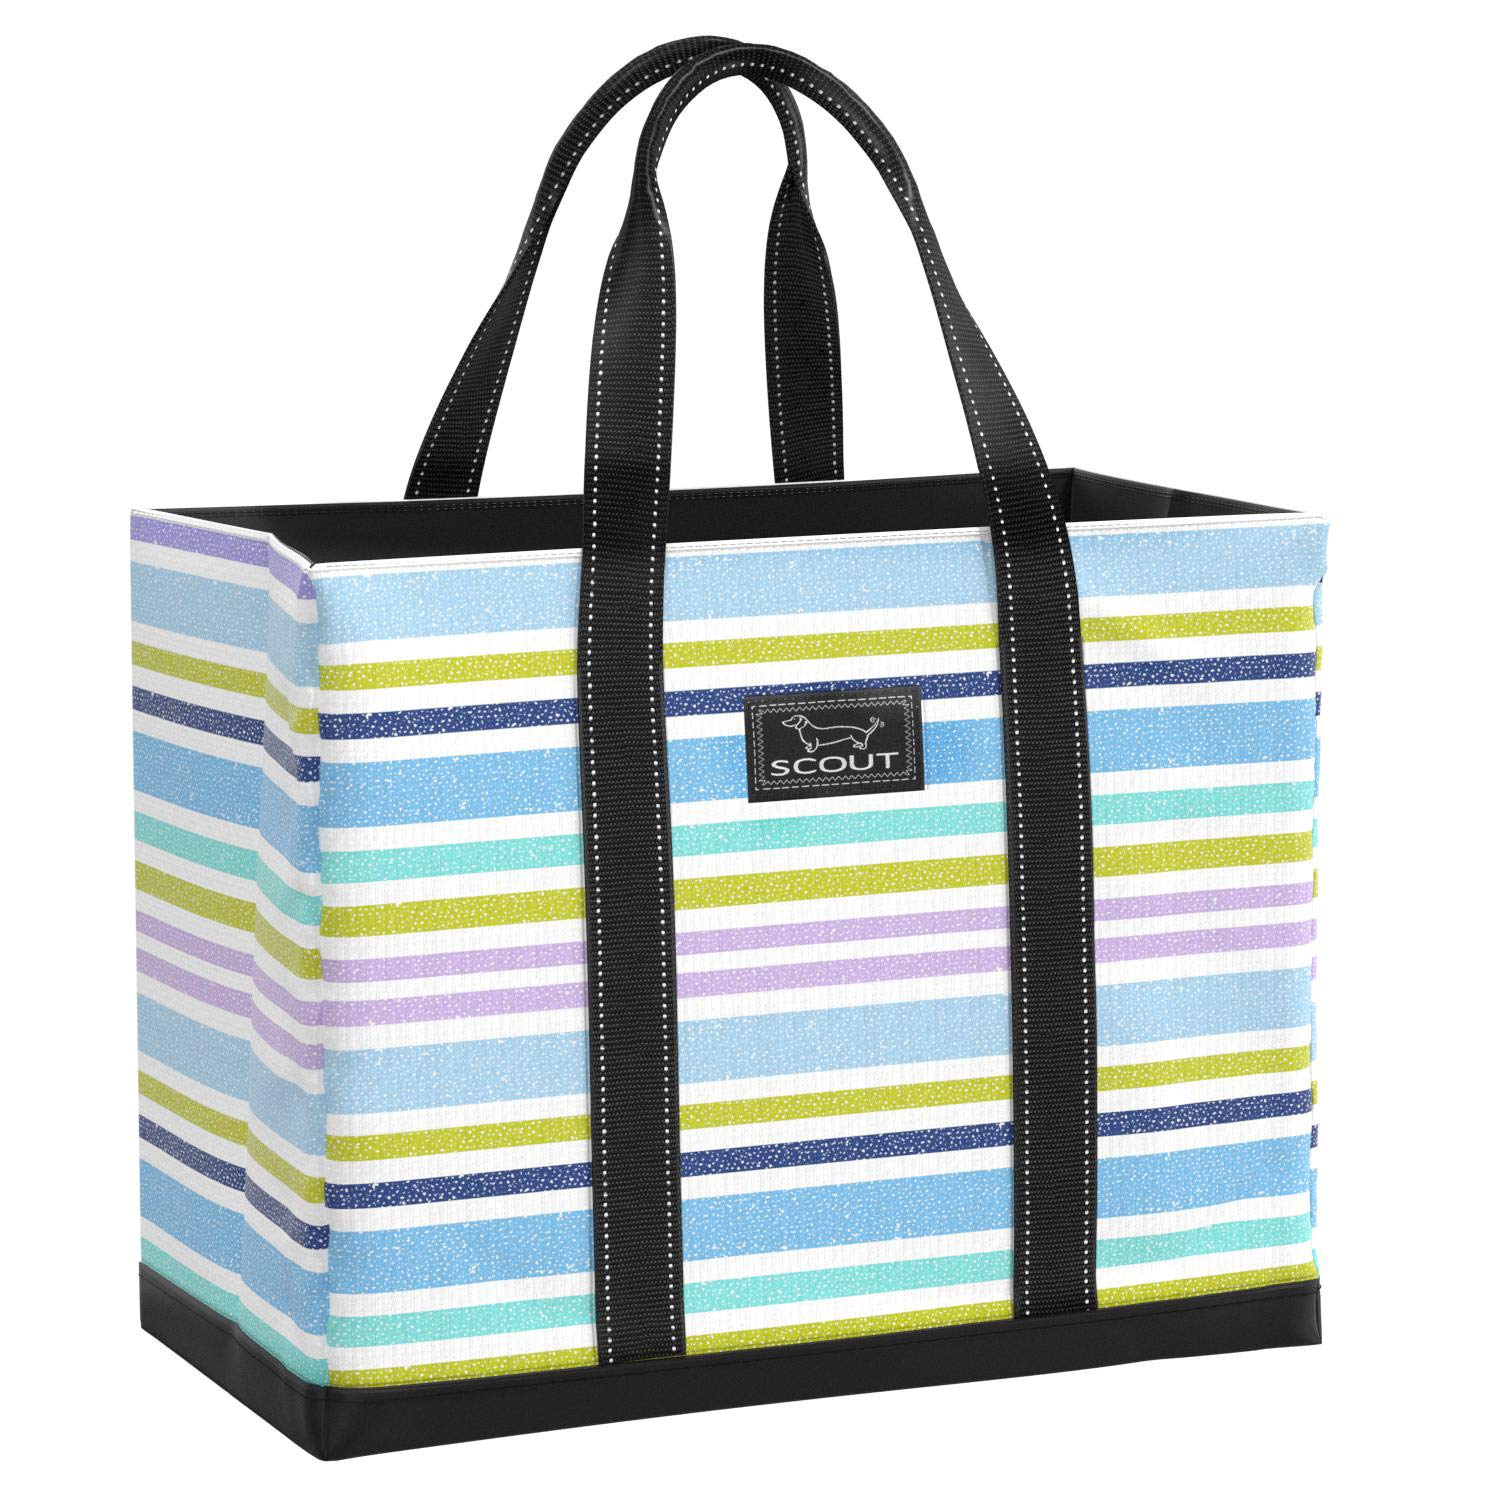 blueehemian Rhapsody SCOUT Original DEANO Tote Bag, Water Resistant Large Tote Bag for Women (Multiple Patterns Available) (Rock The Boat)